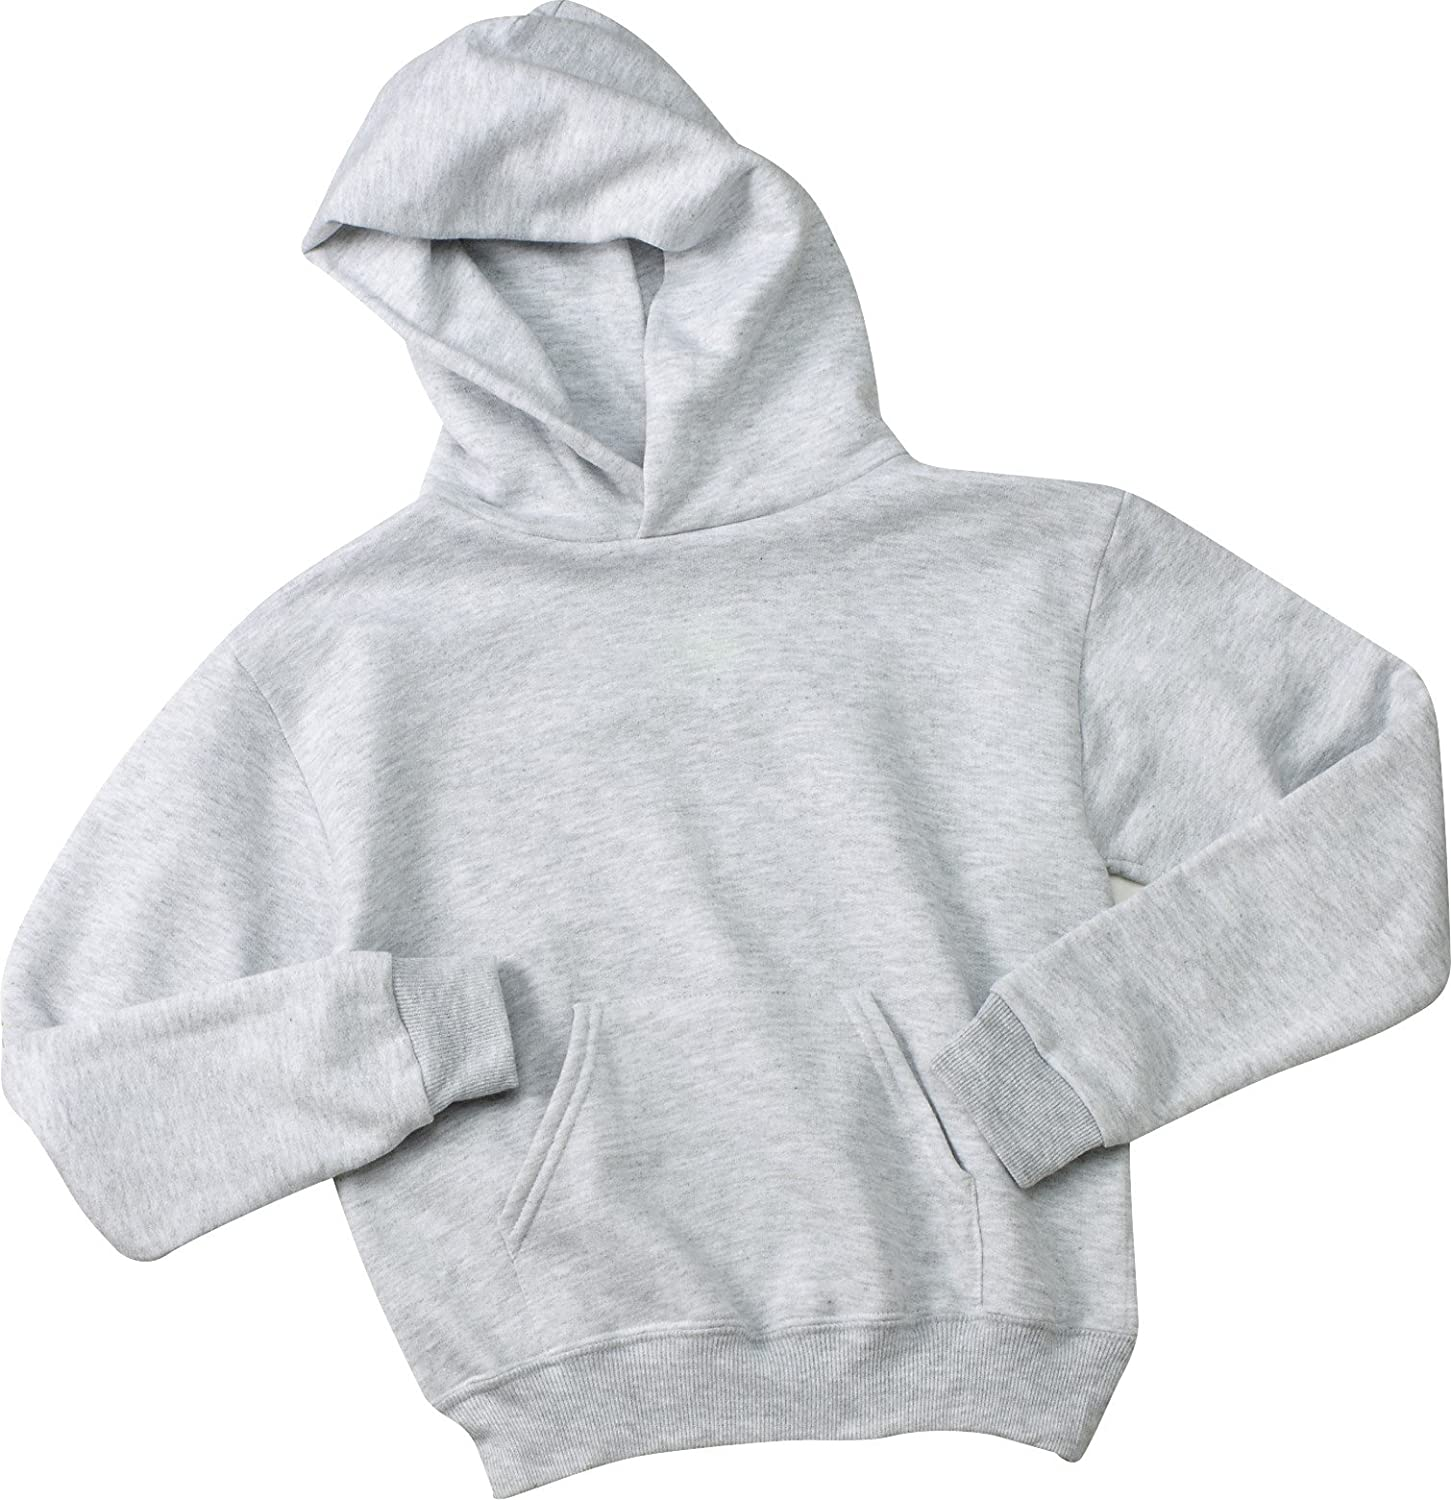 f1a8c65d7 Amazon.com  Jerzees Youth Pullover Hood  Clothing